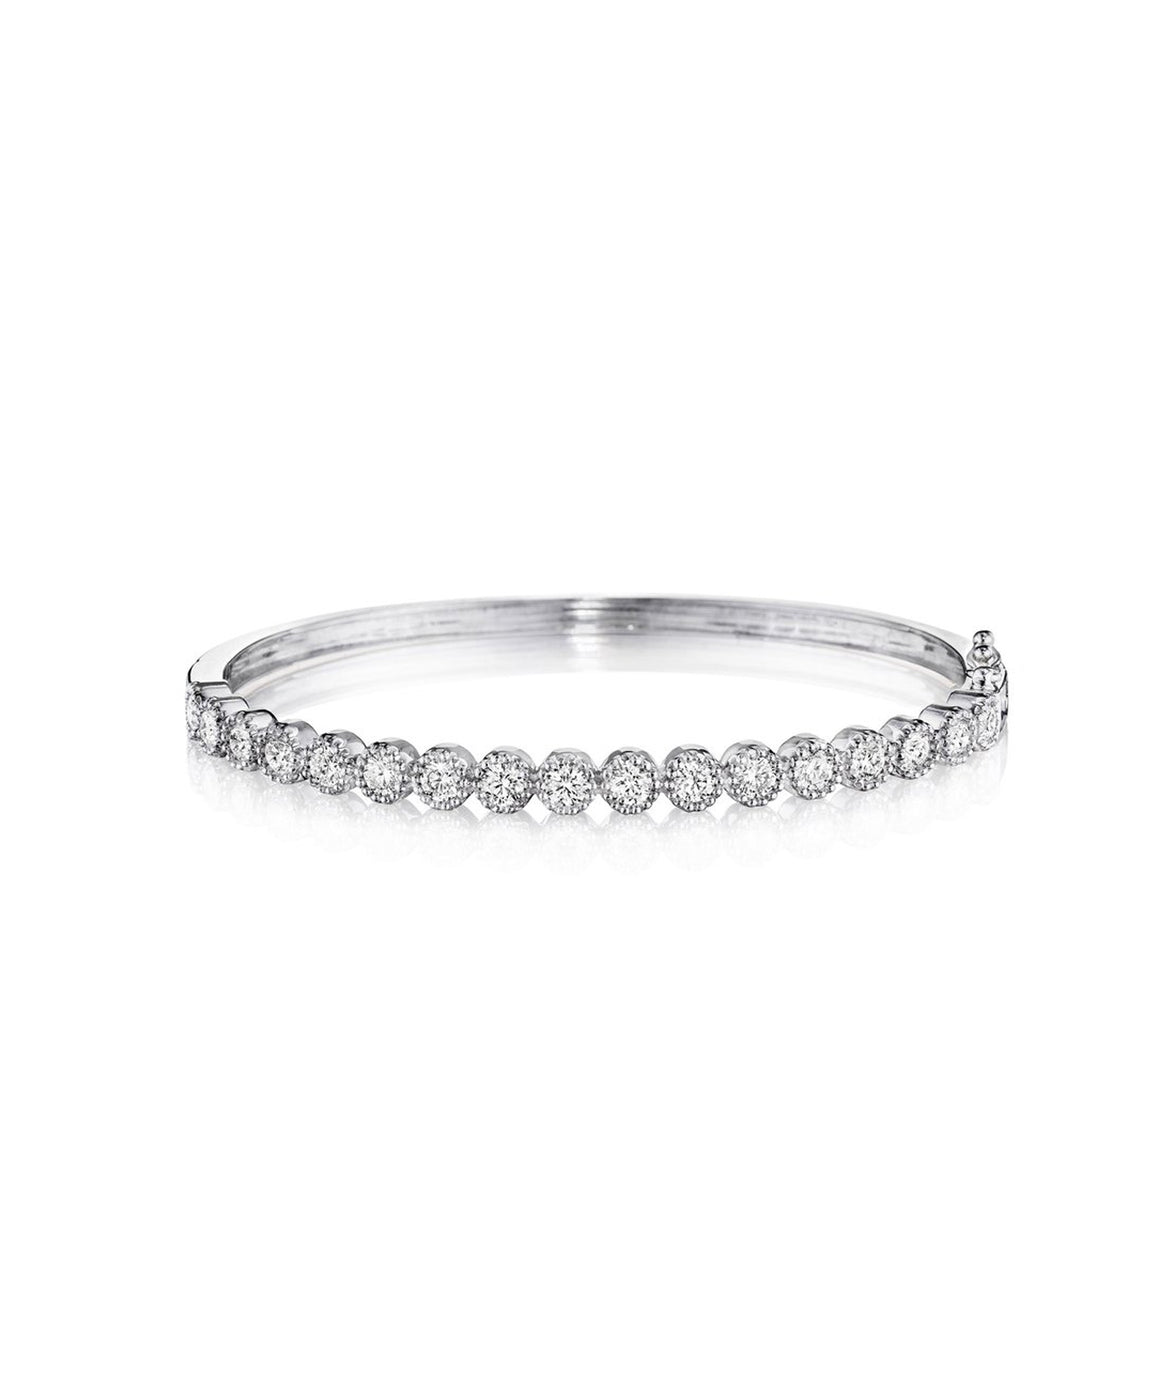 White gold beaded bangle